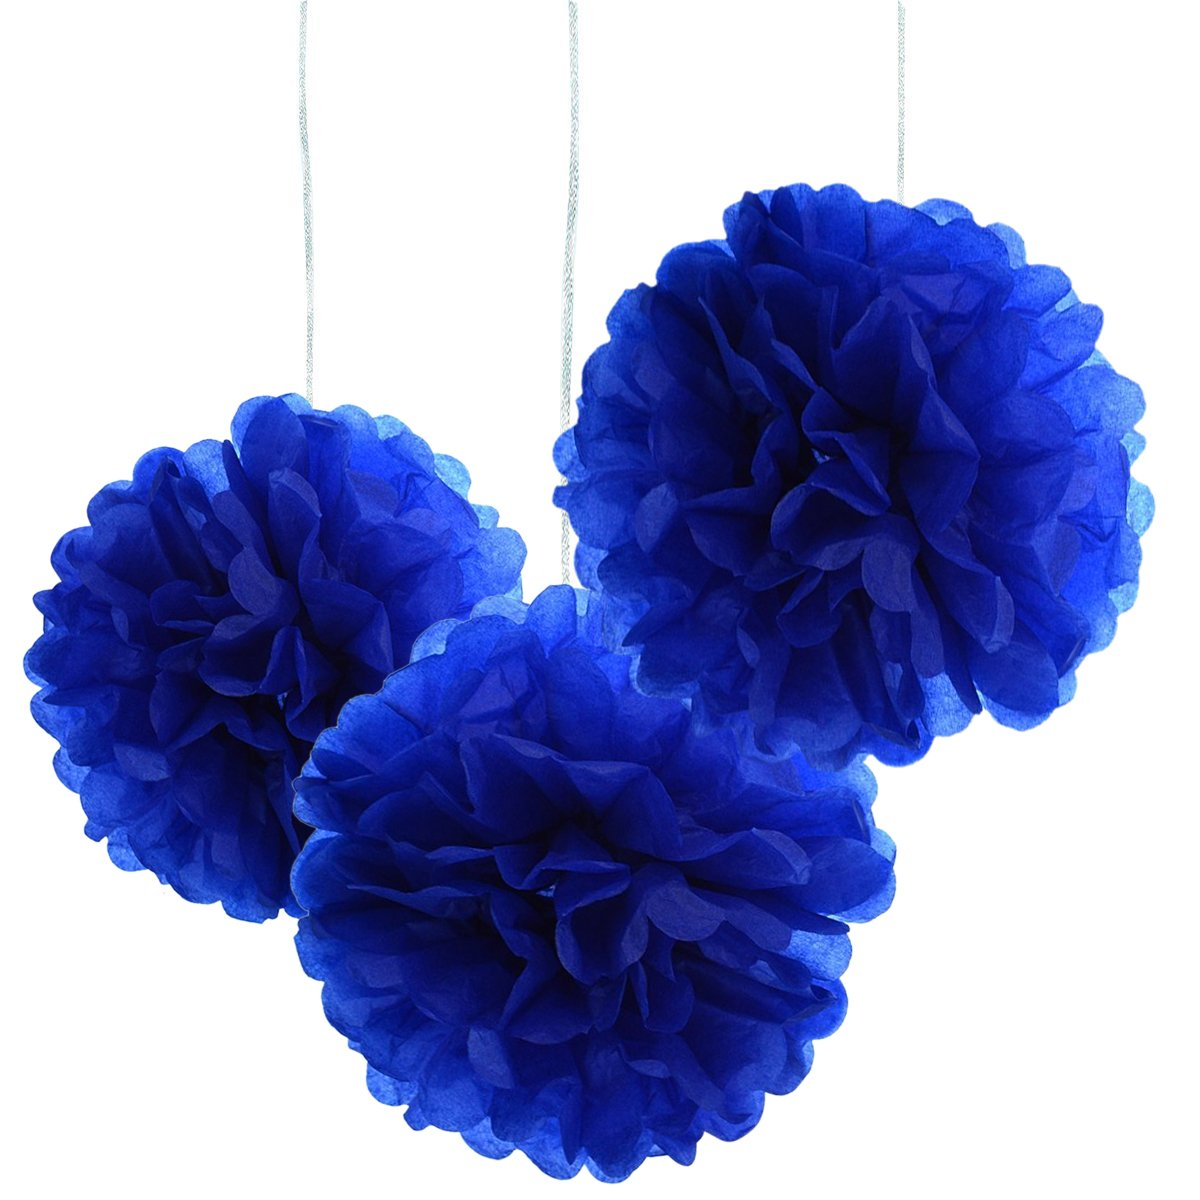 10pcs Royal Blue Tissue Hanging Paper Pom-poms, Hmxpls Flower Ball Wedding Party Outdoor Decoration Premium Tissue Paper Pom Pom Flowers Craft Kit, 10 Inch 4336867302